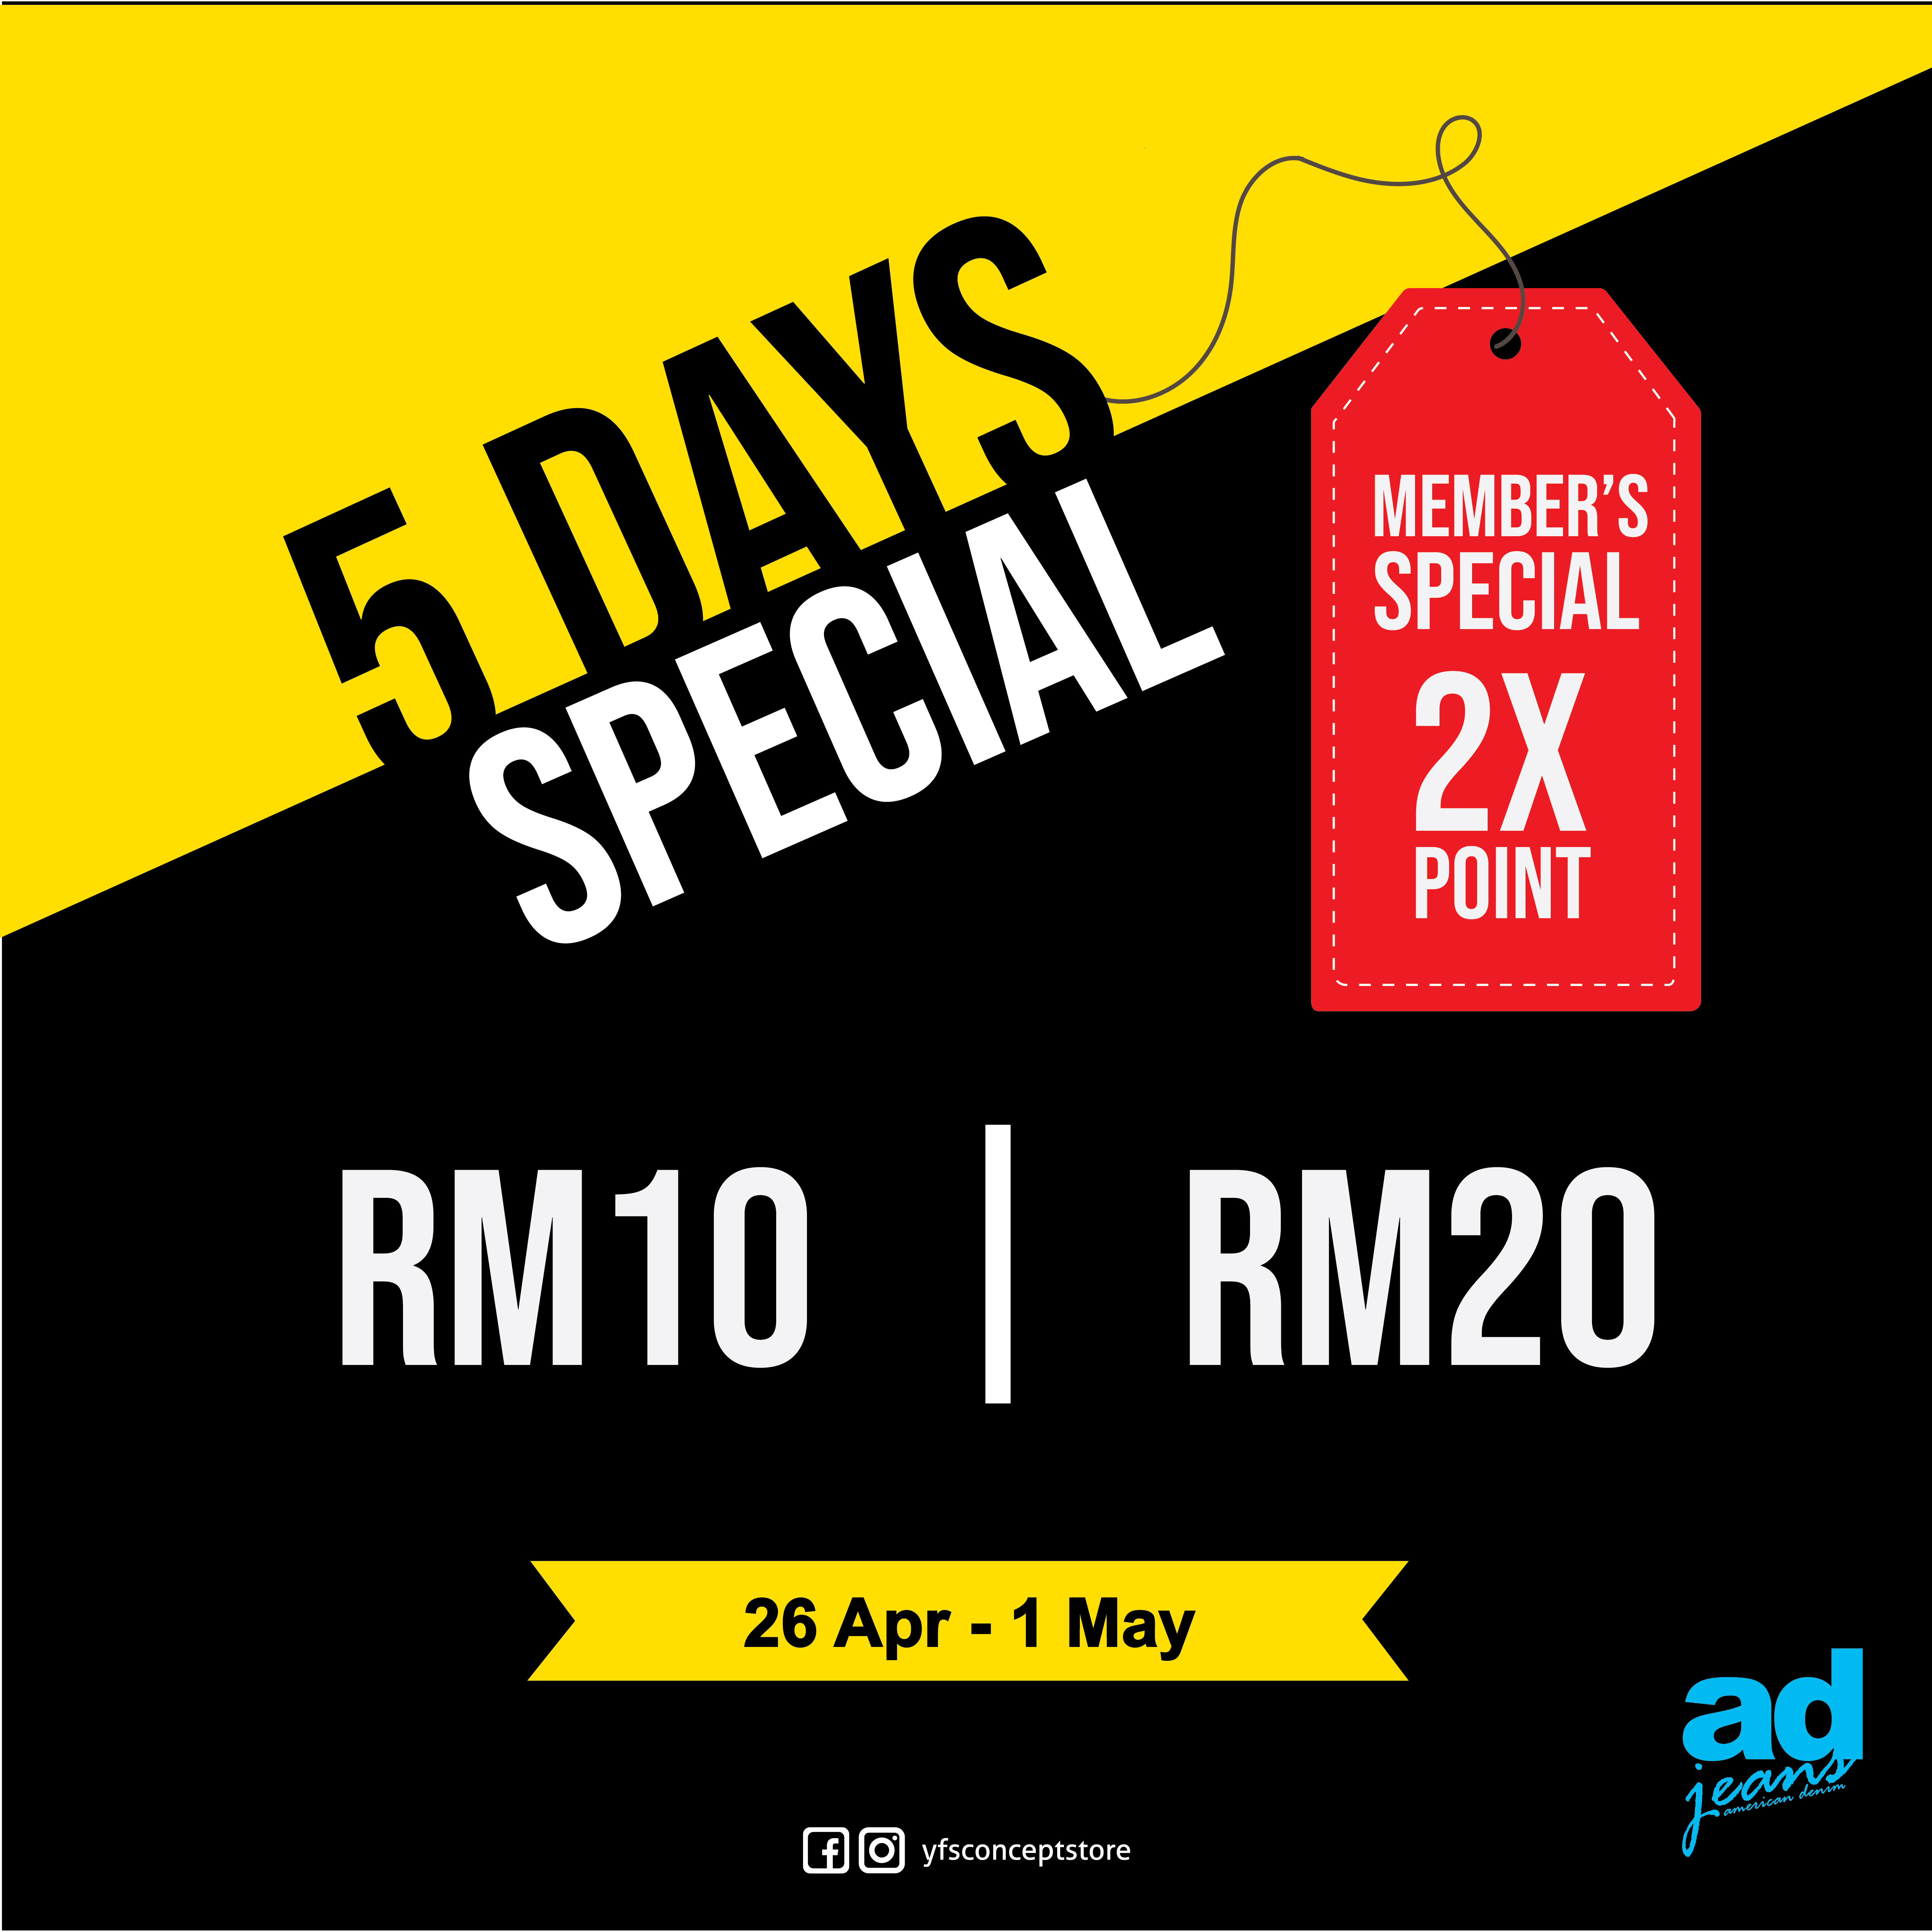 5 Days Special